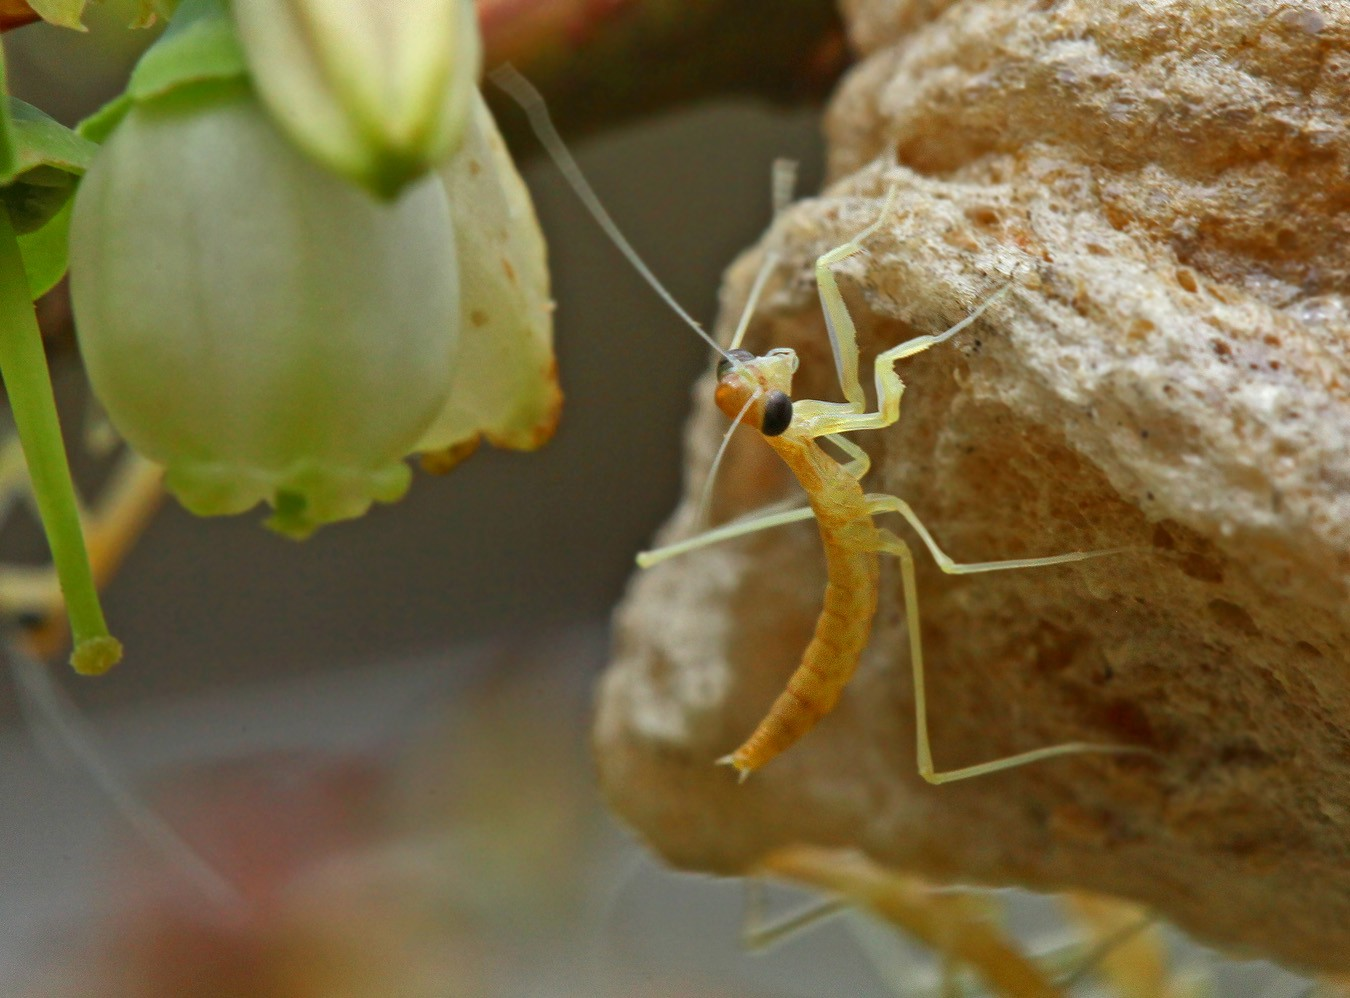 baby mantis leaving home img aw author sava grego gregory and verena